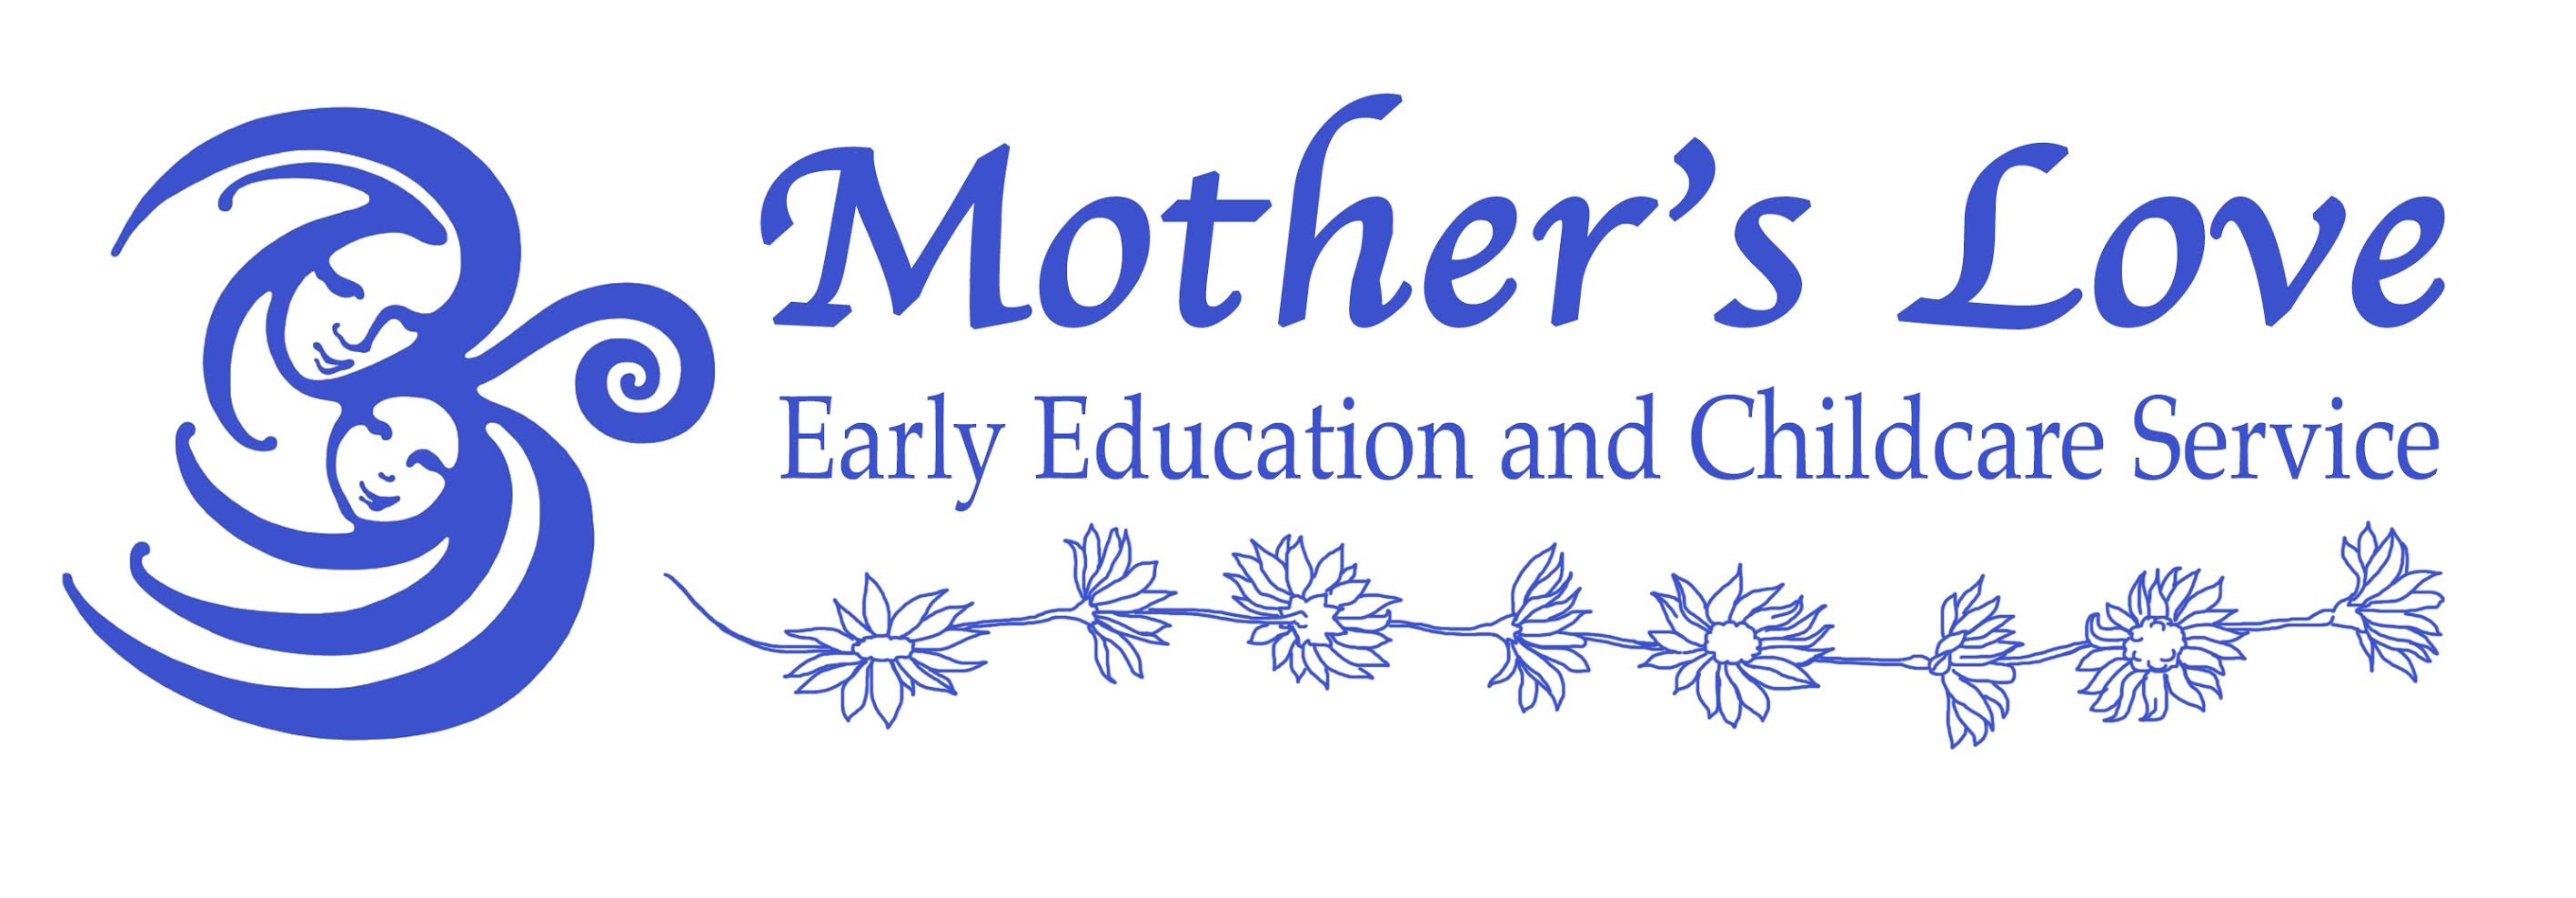 Mother's Love Early Education and Childcare Service